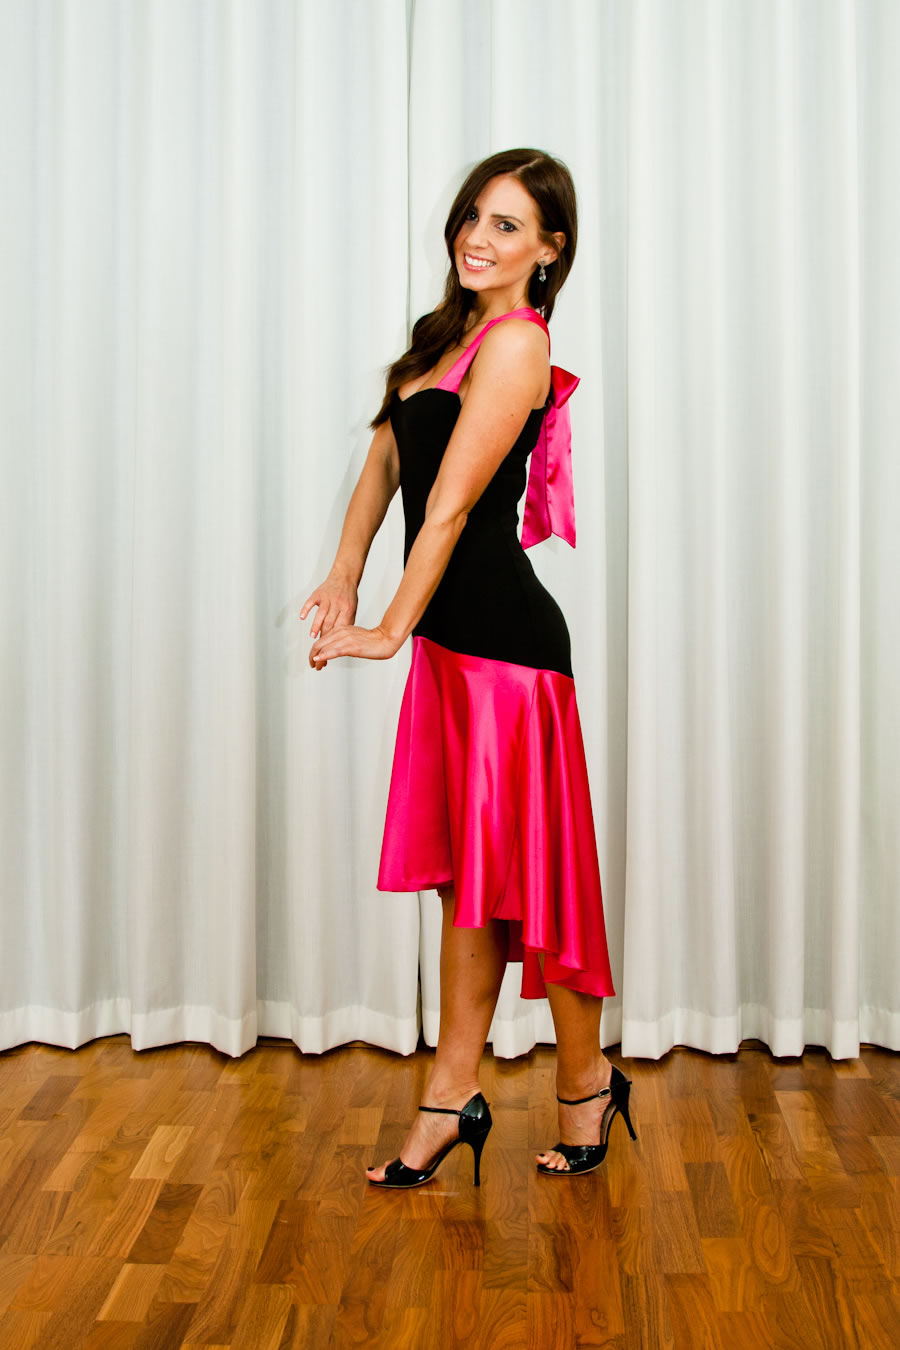 Tango Clothing Dresses Fashion Made In The Uk: Tango Clothing, Dresses & Fashion